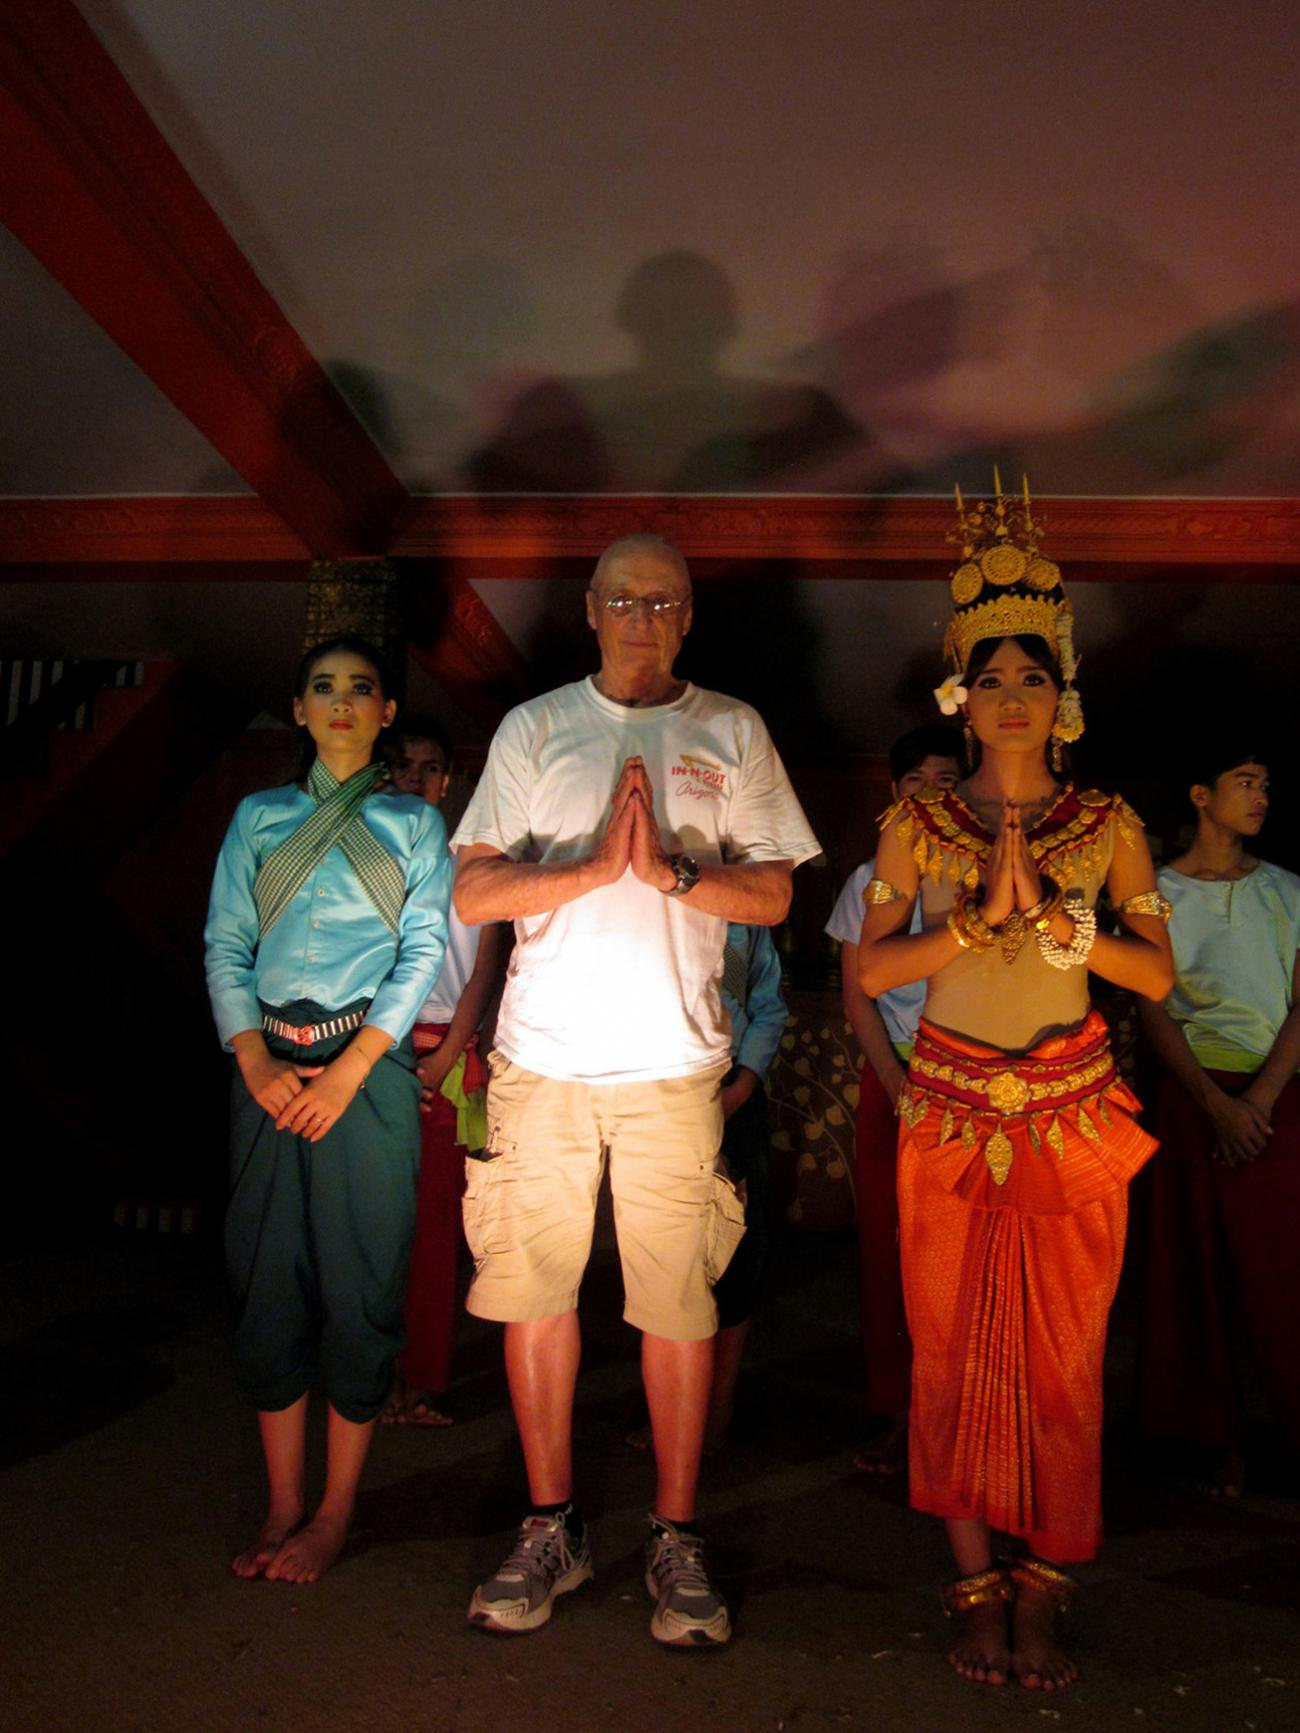 Posing with the Temple Dancers by junge1